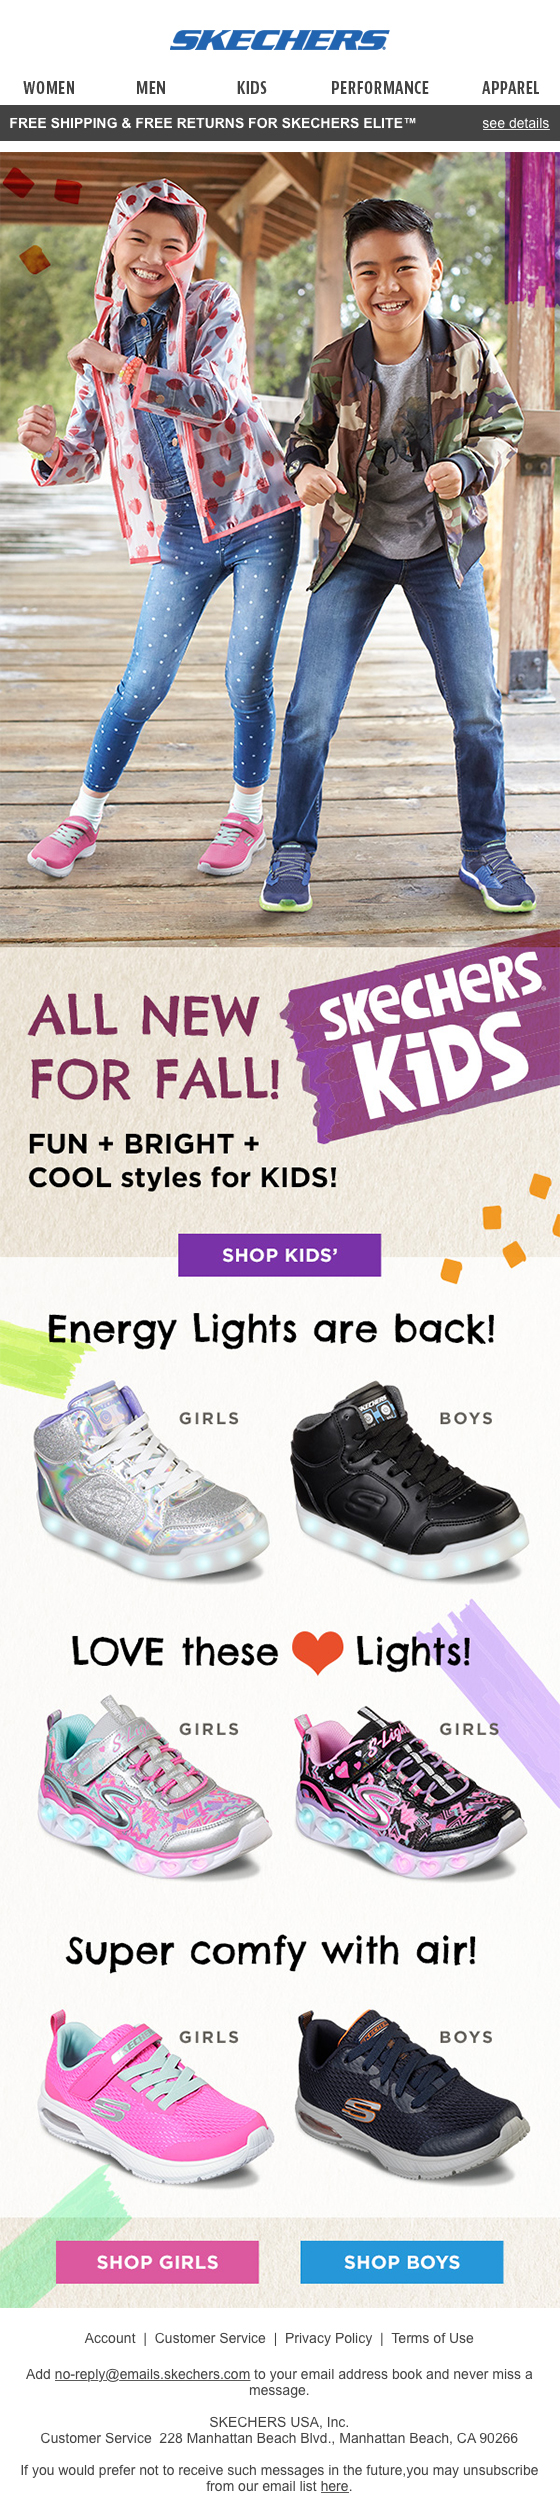 EML33021_FALL_STYLES_FOR_KIDS_OCTOBER172018_Email_Mockups